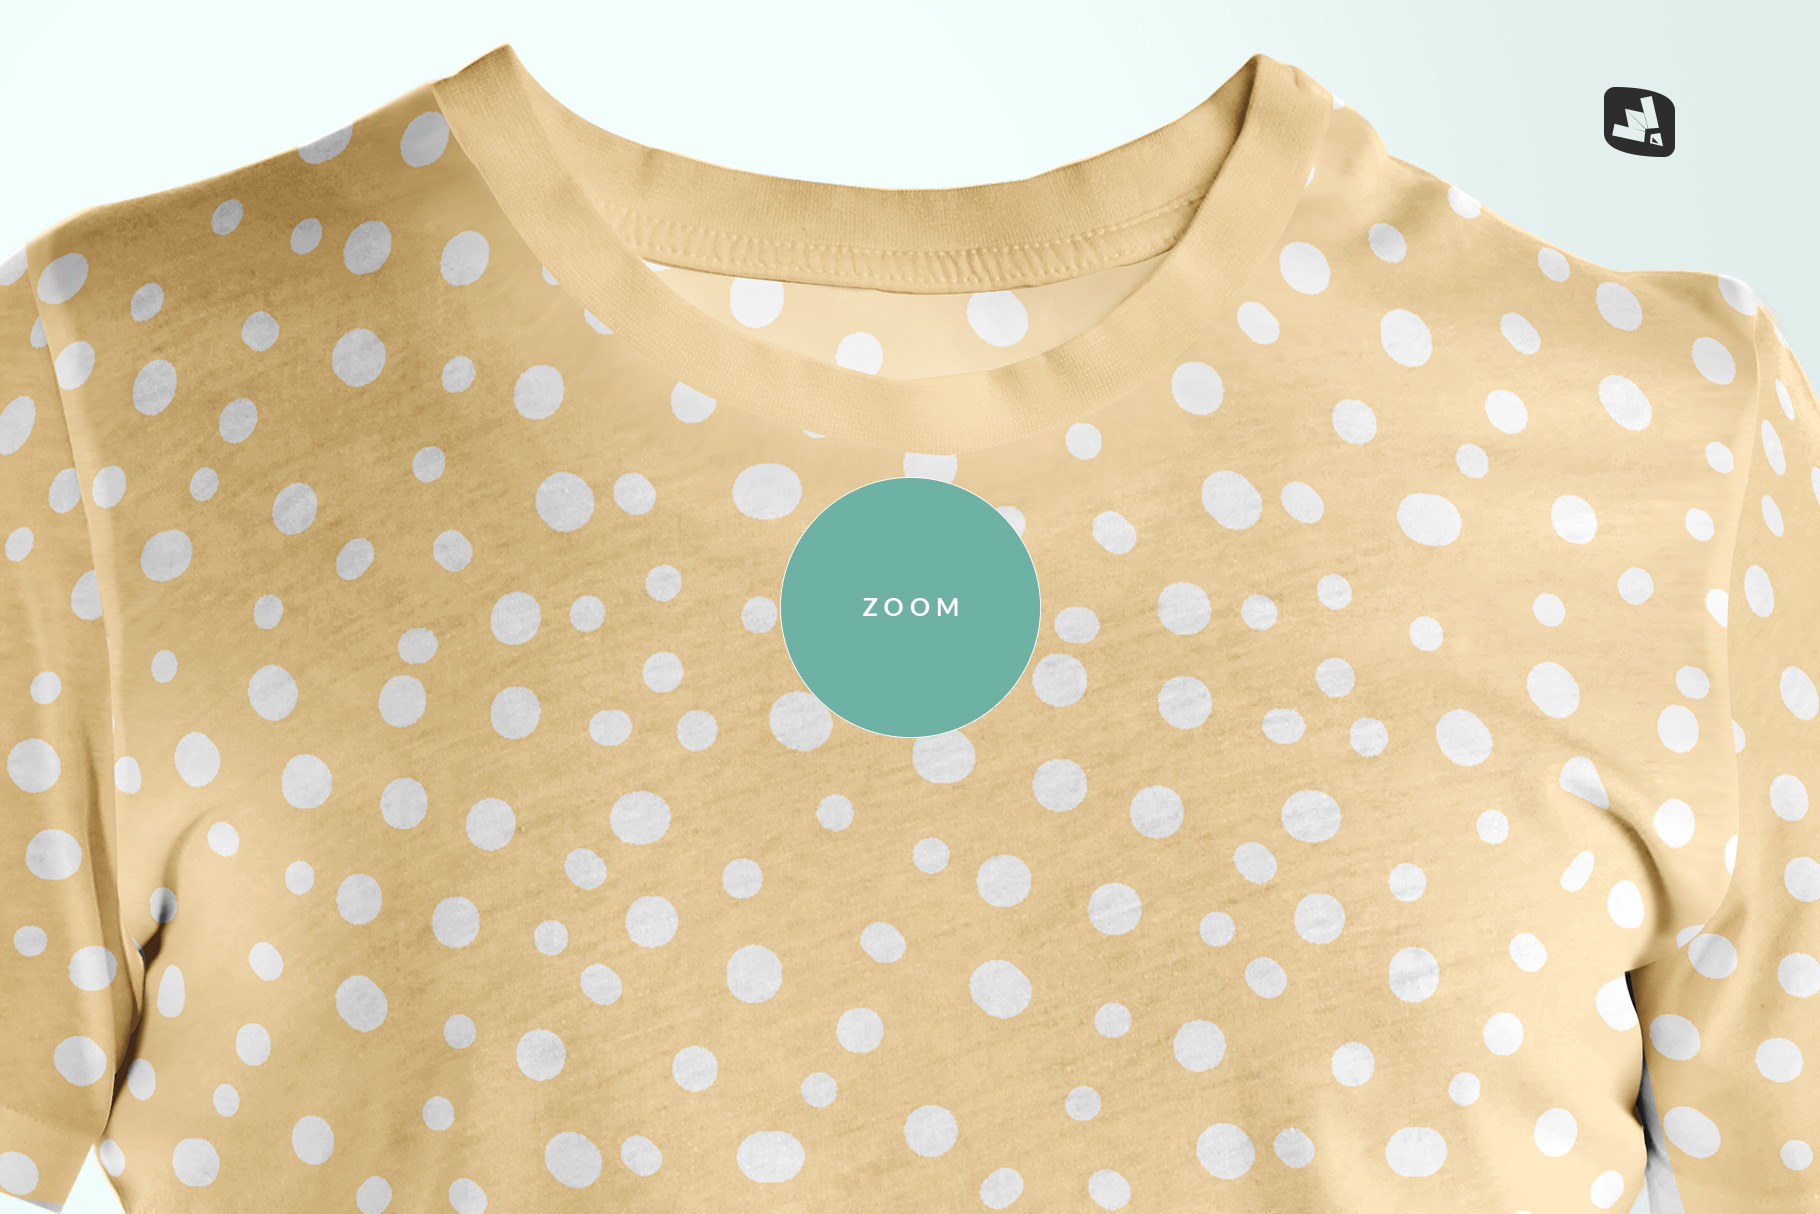 zoomed in image of the men's round collar tshirt mockup